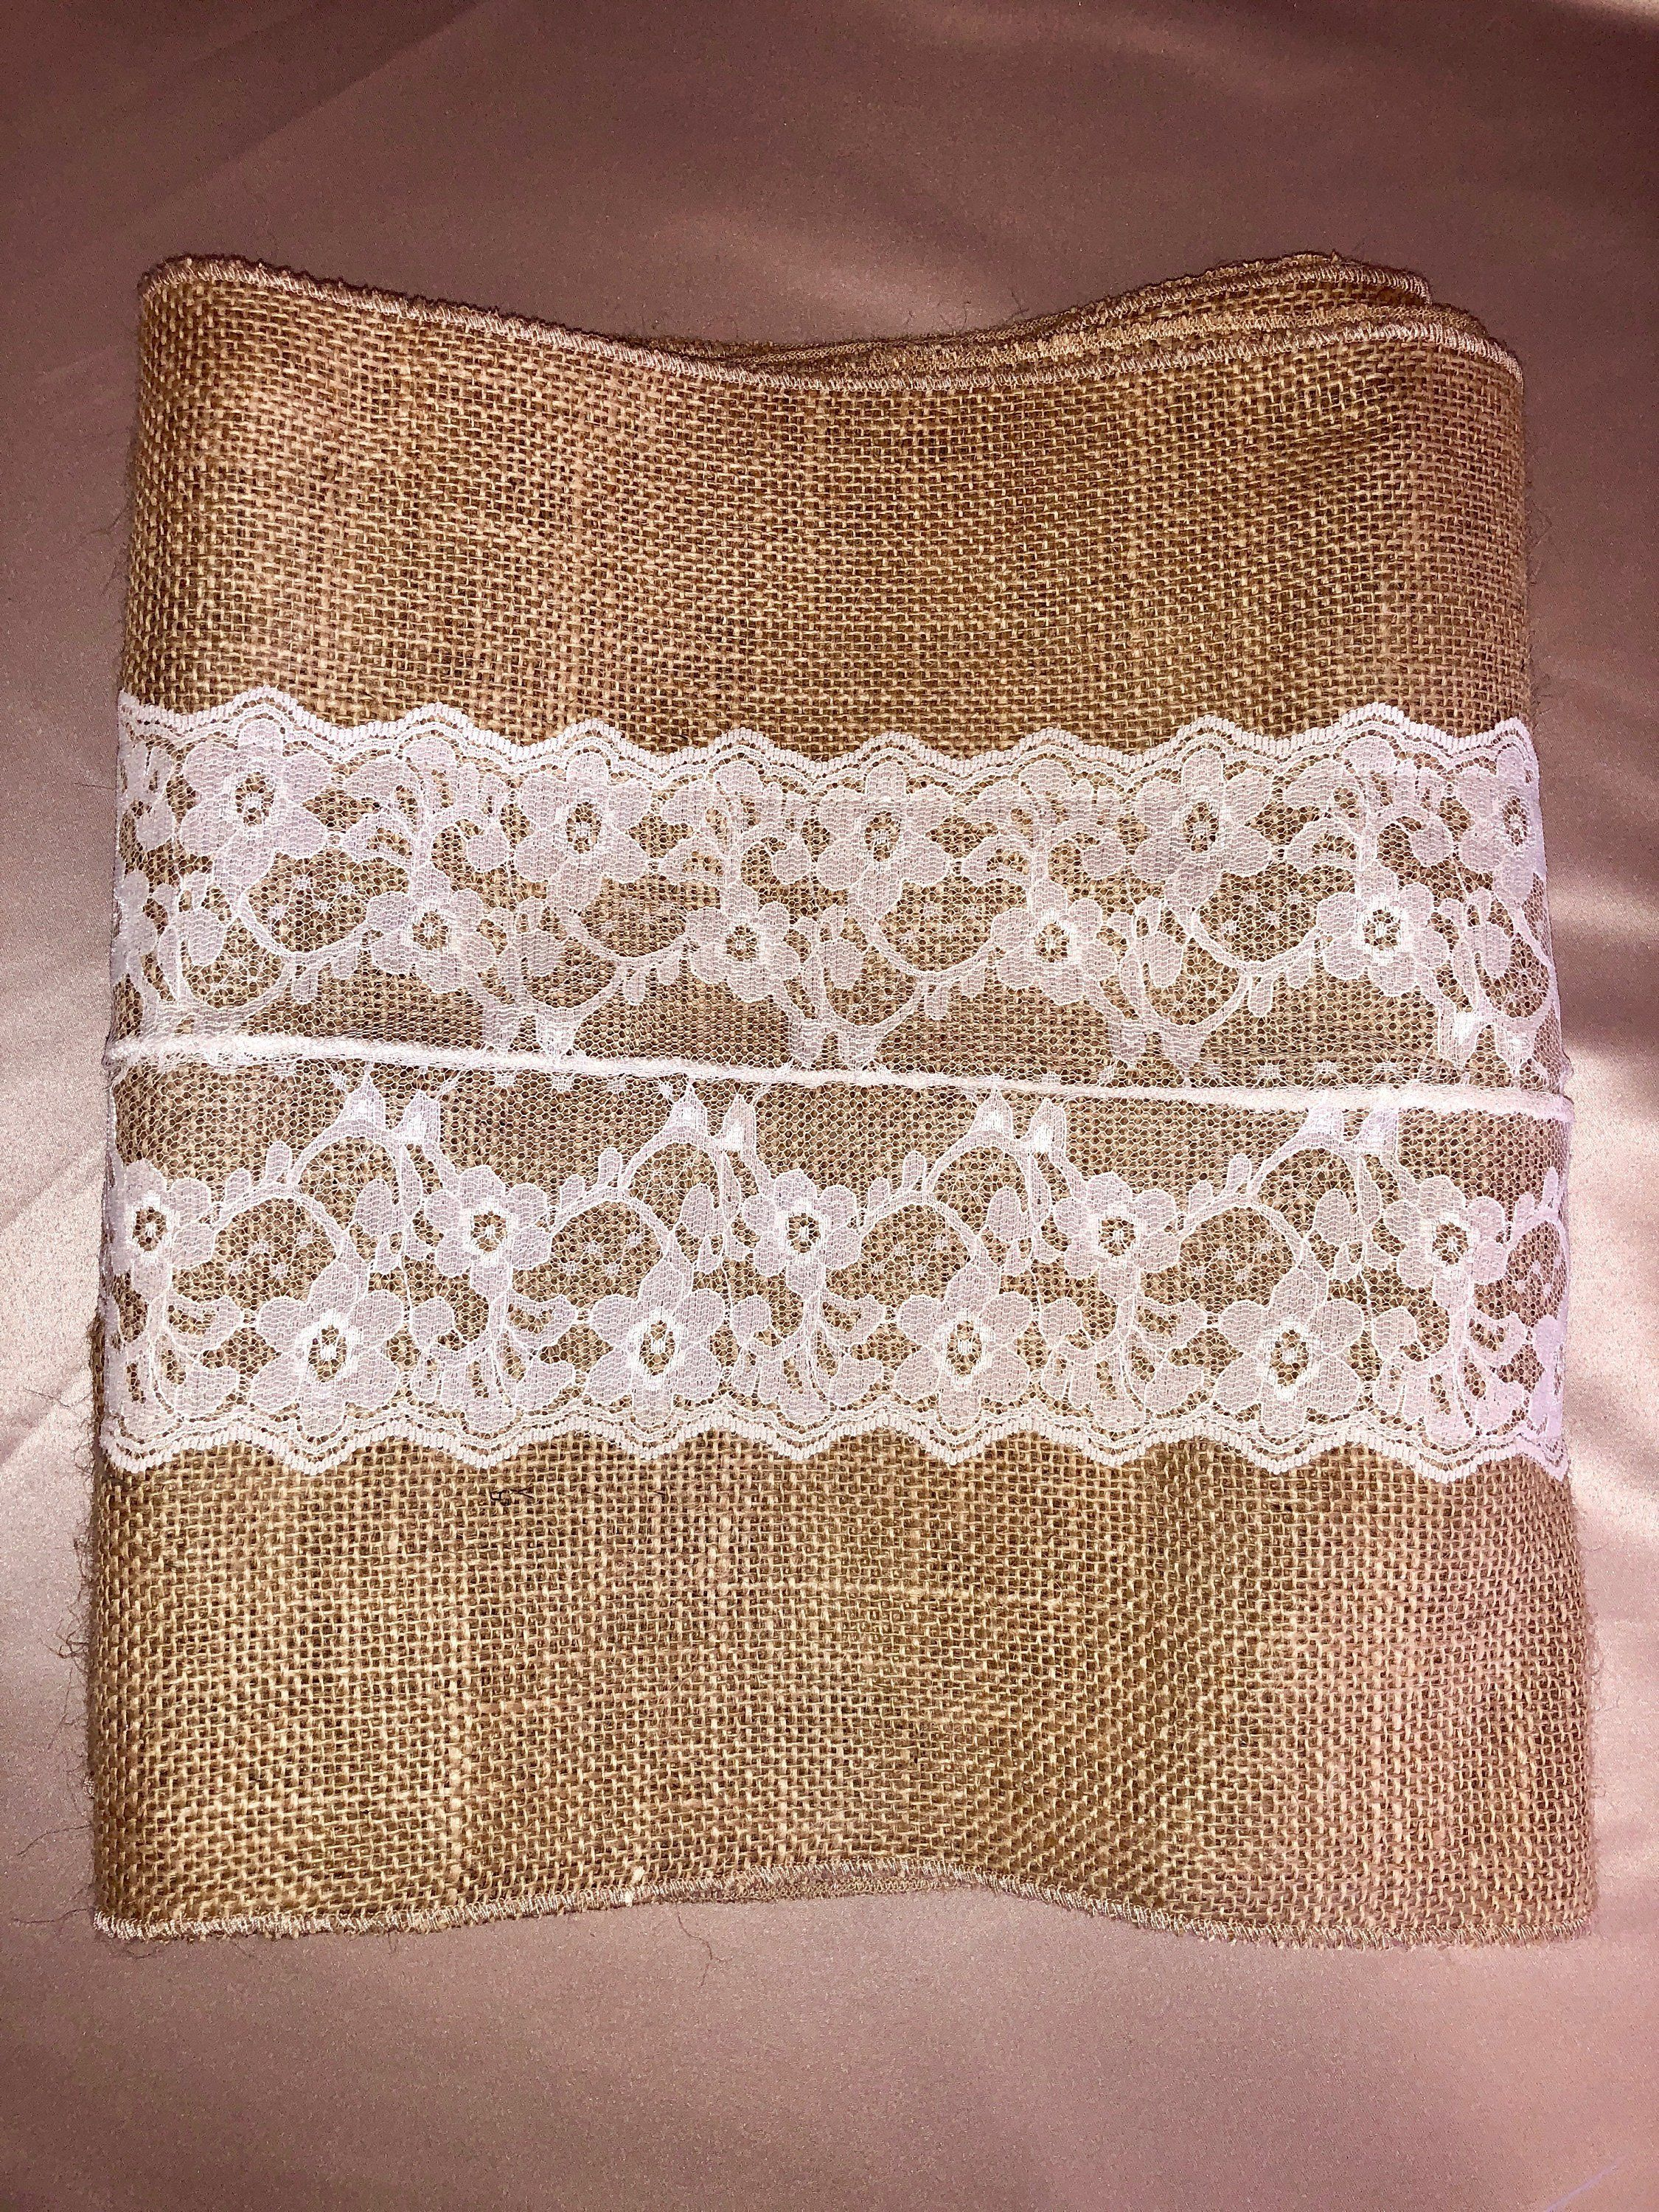 Sale Table Runner, Burlap Table Runner With Ivory Lace, Rustic